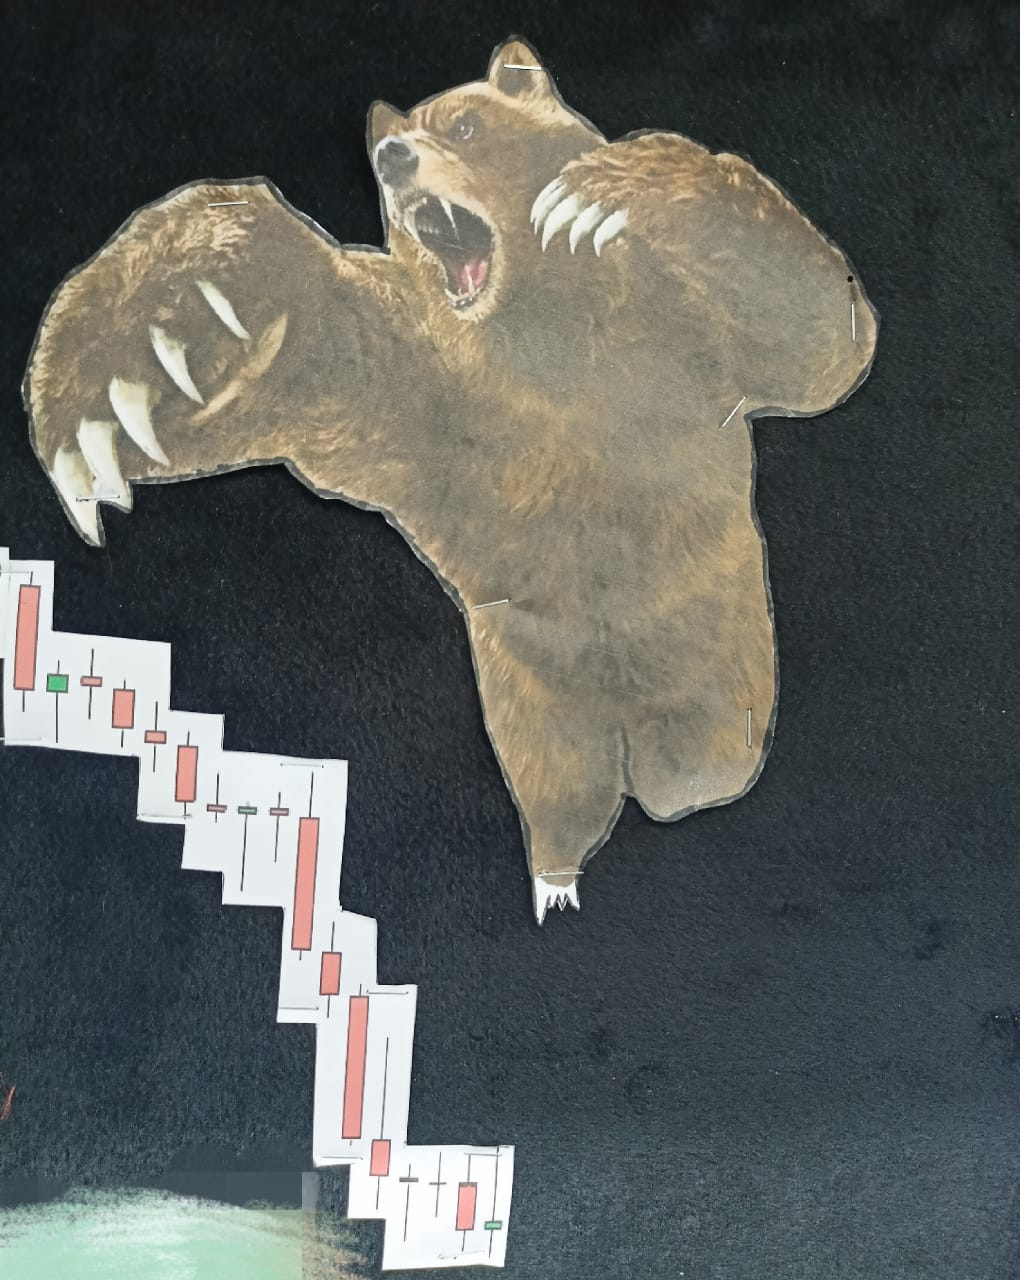 Sensex falls 580 points on weak global cues, Nifty ends at 12772